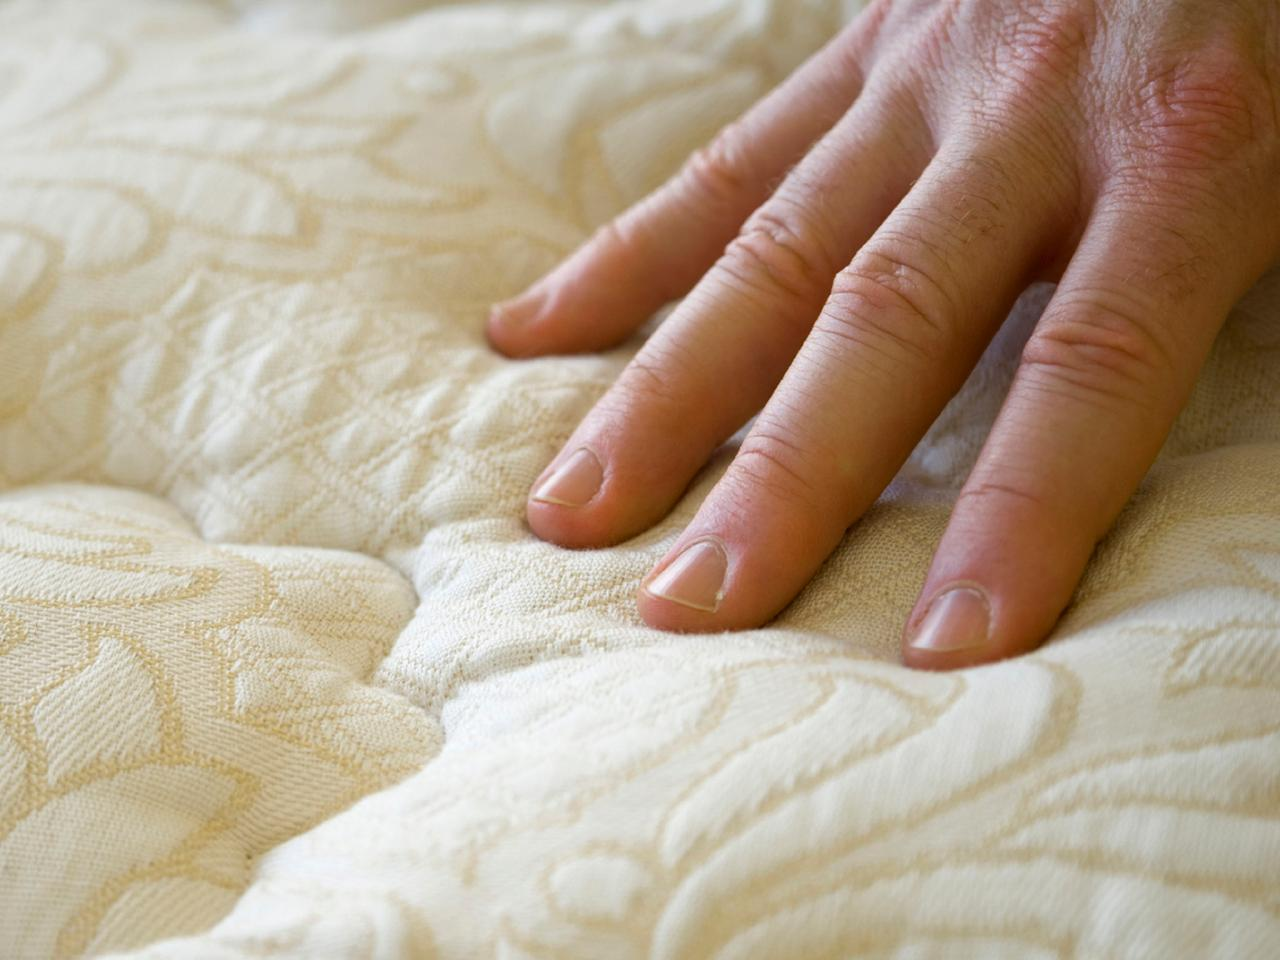 Mattress online and mattress protectors